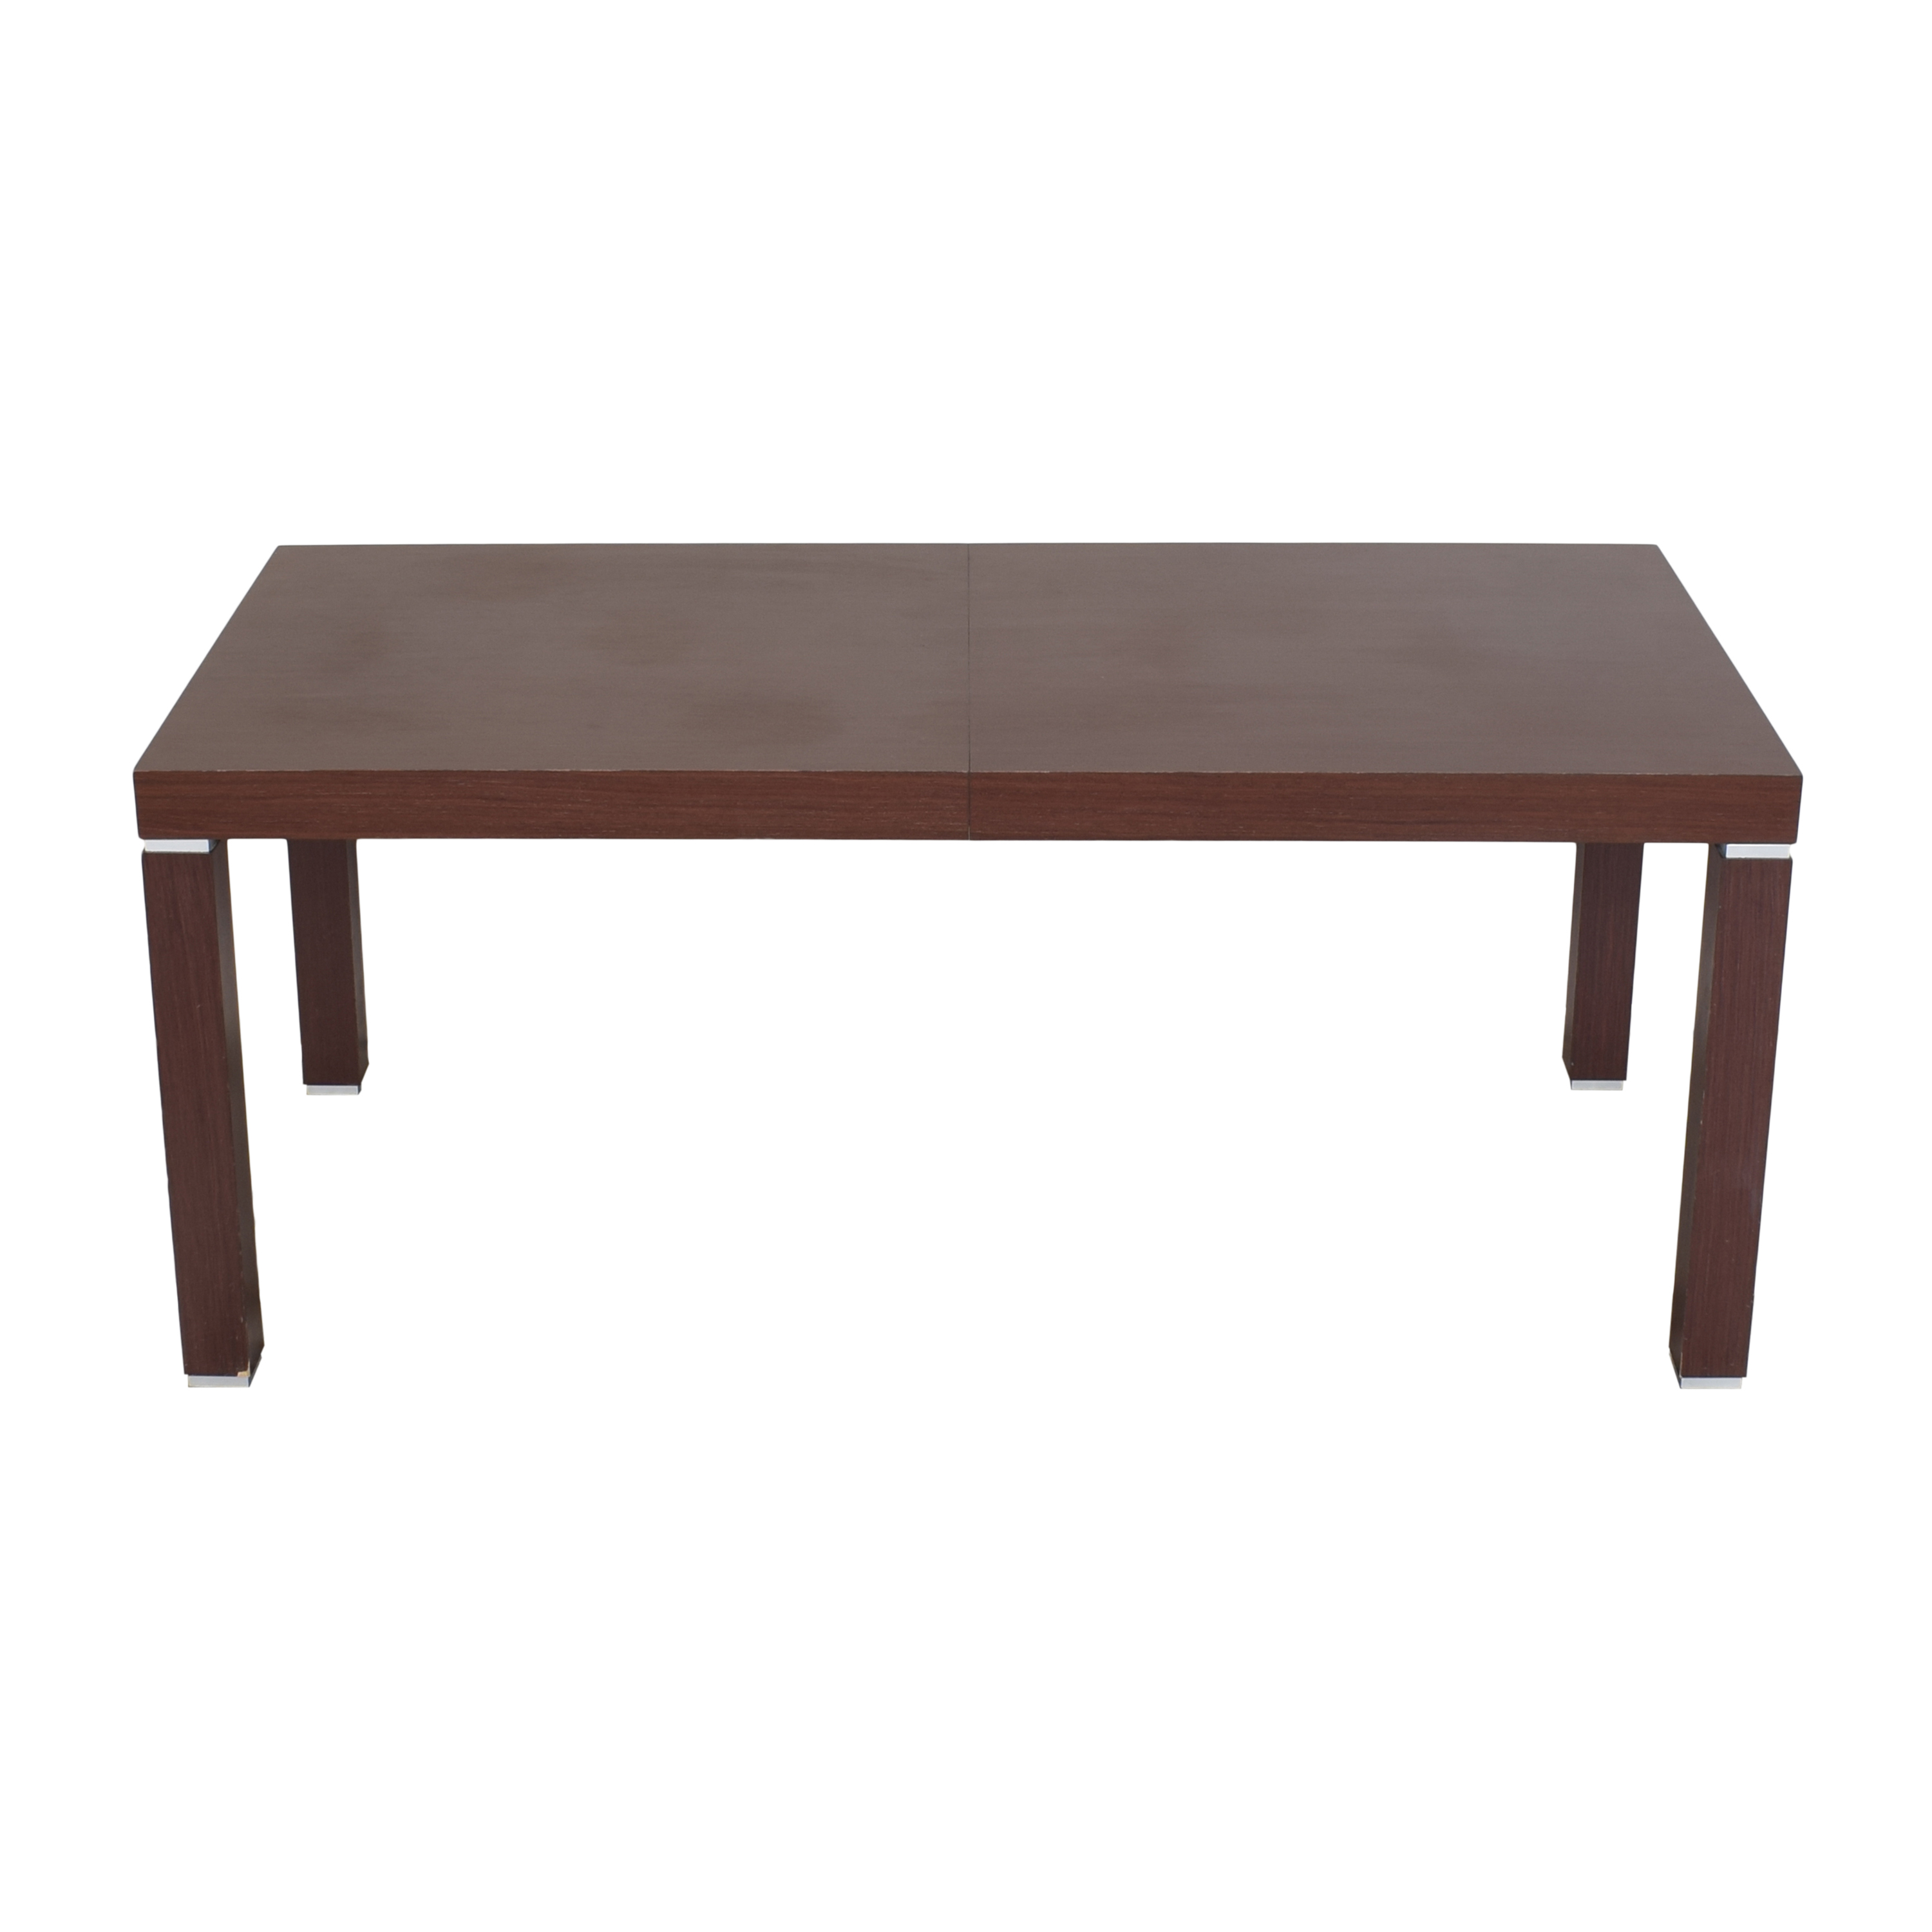 Rossetto Rossetto Extendable Dining Table